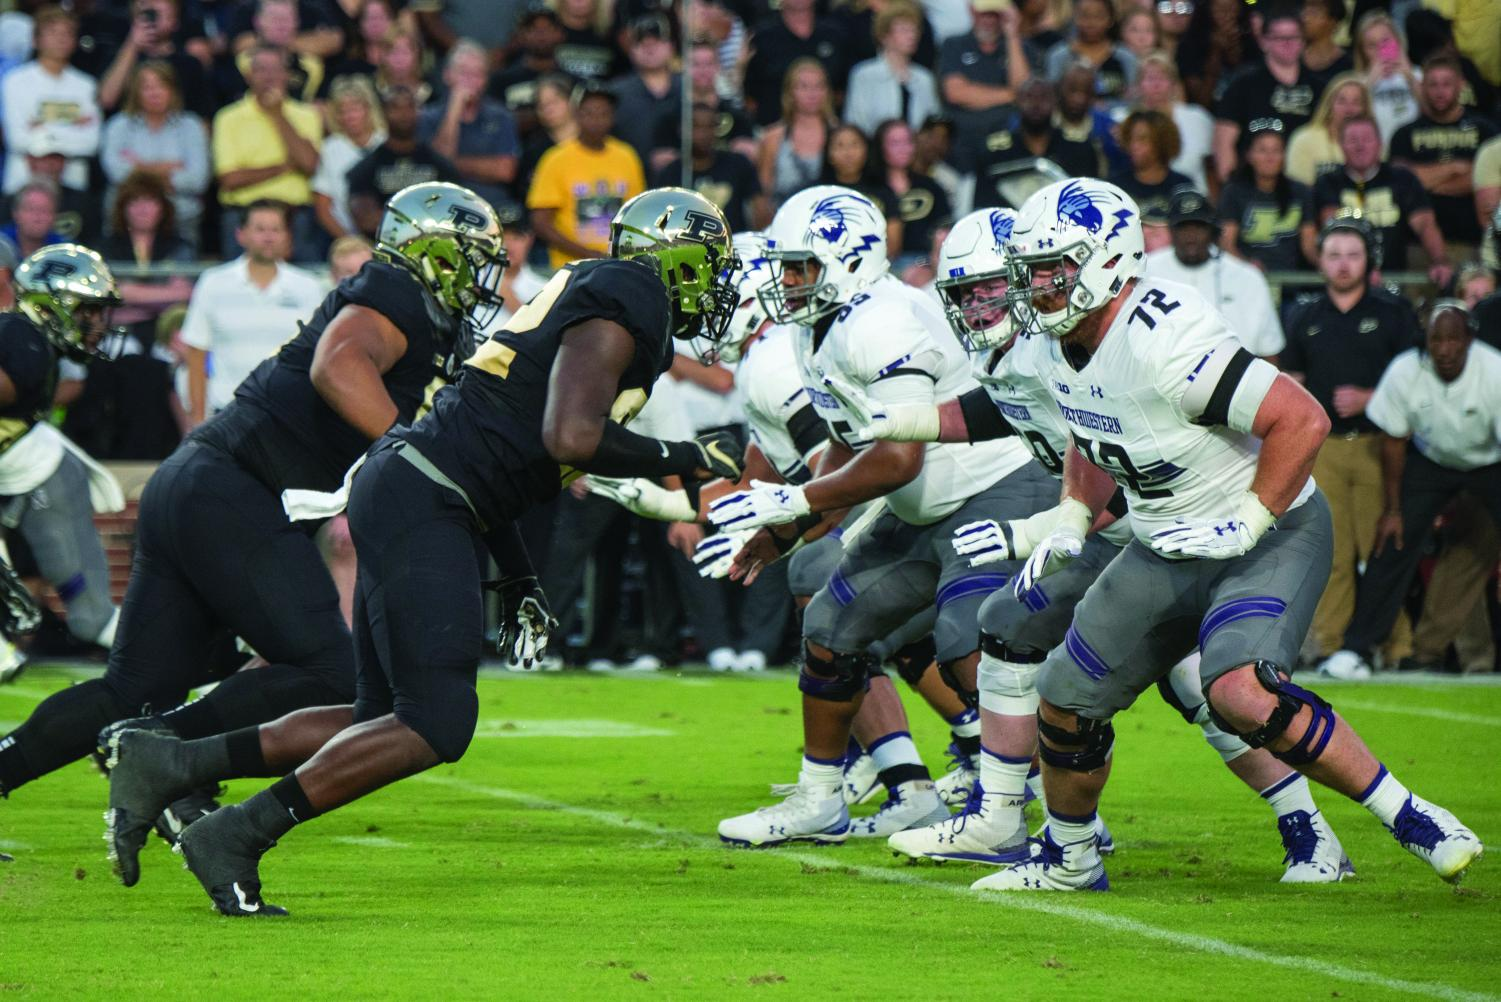 Several offensive linemen prepare to engage blocks. The Wildcats have picked up their play in recent weeks.